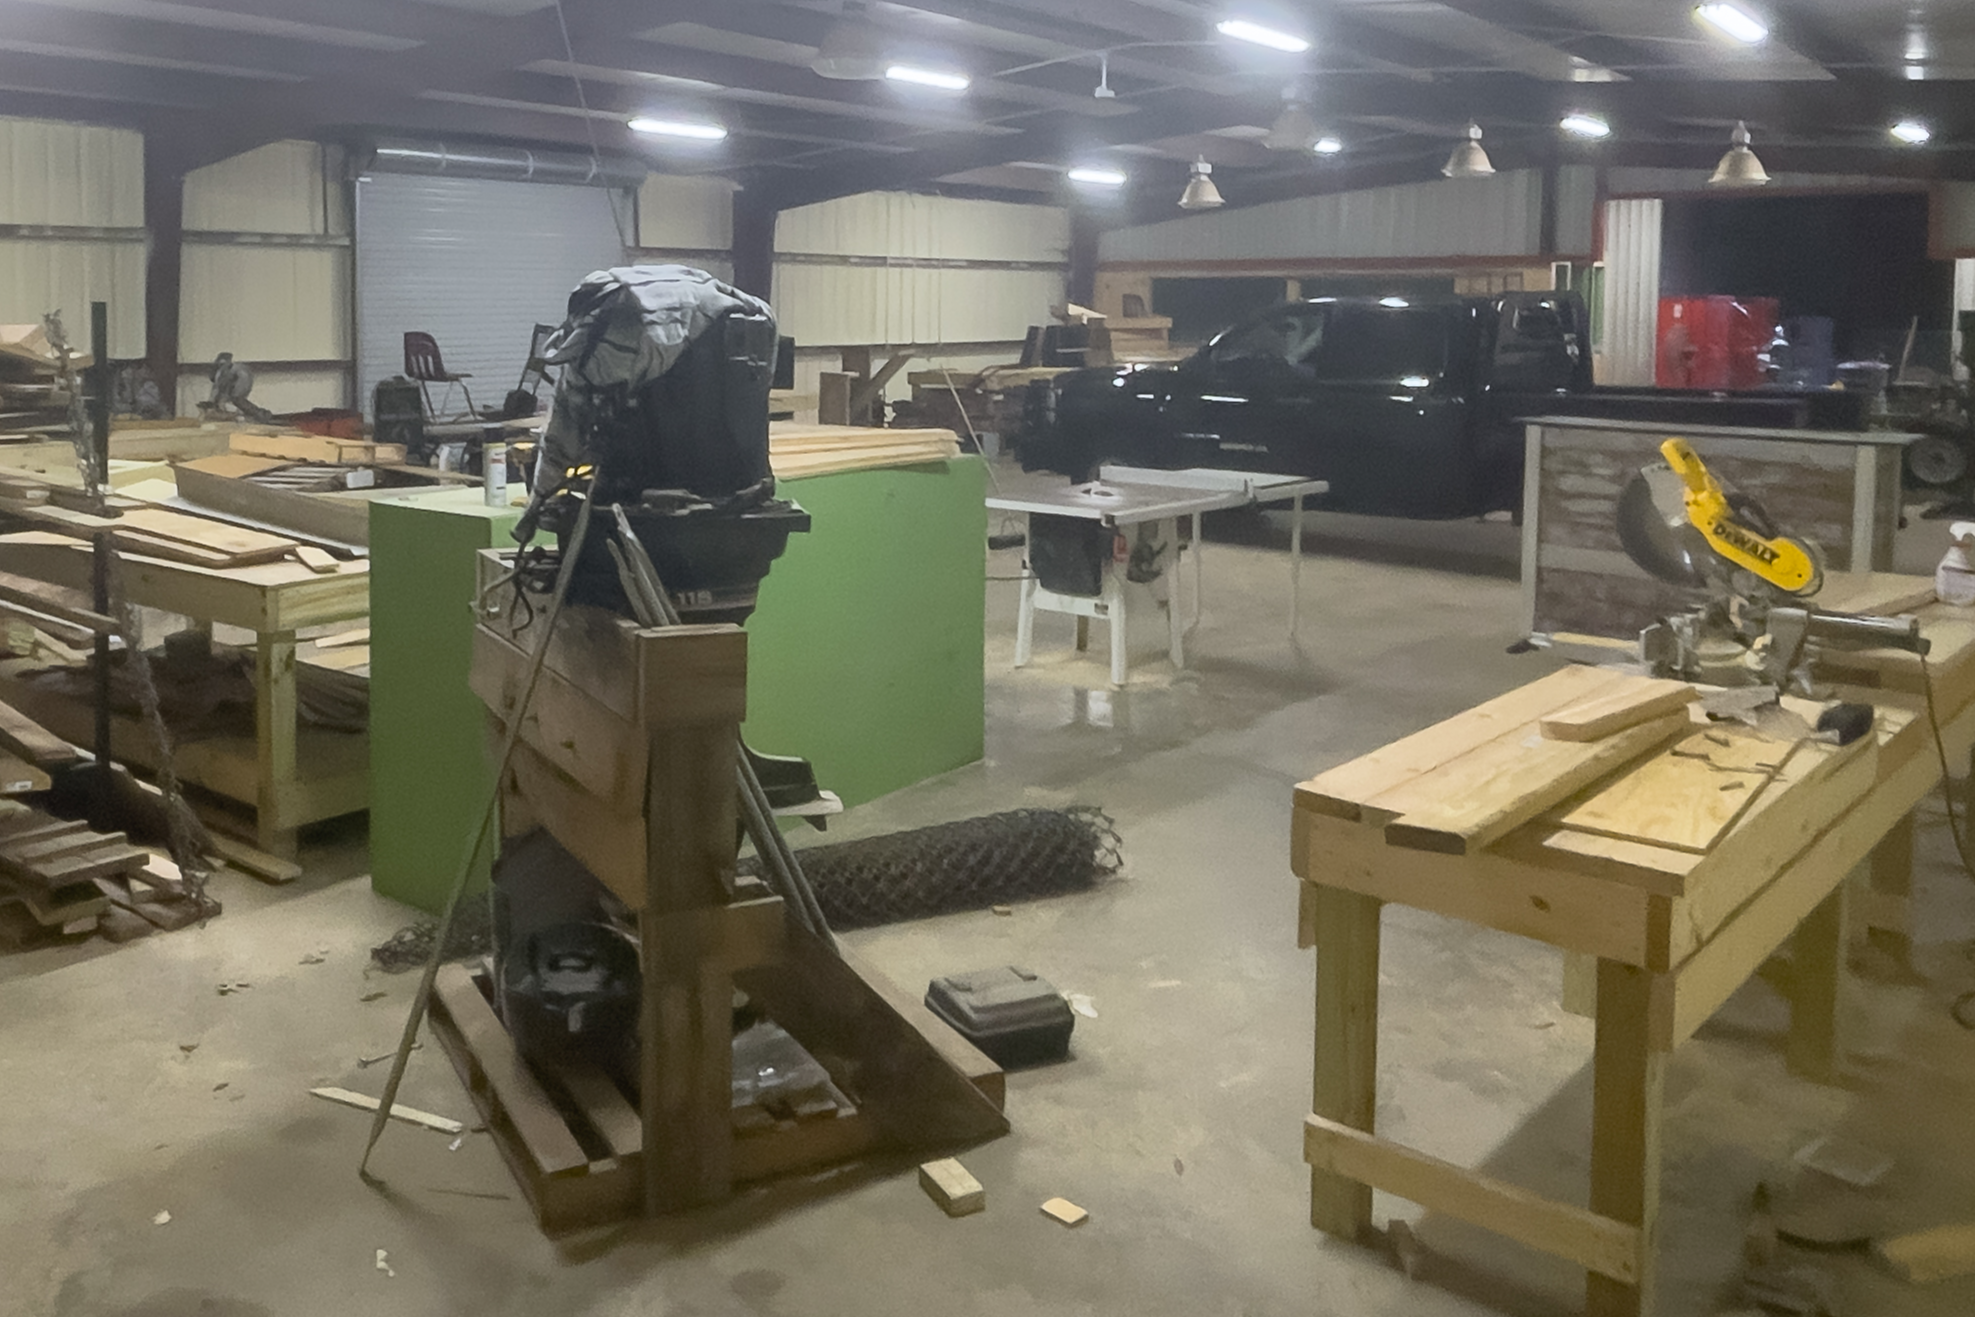 Agriculture Mechanics Shop with Metal and Woodworking Equipment and Projects